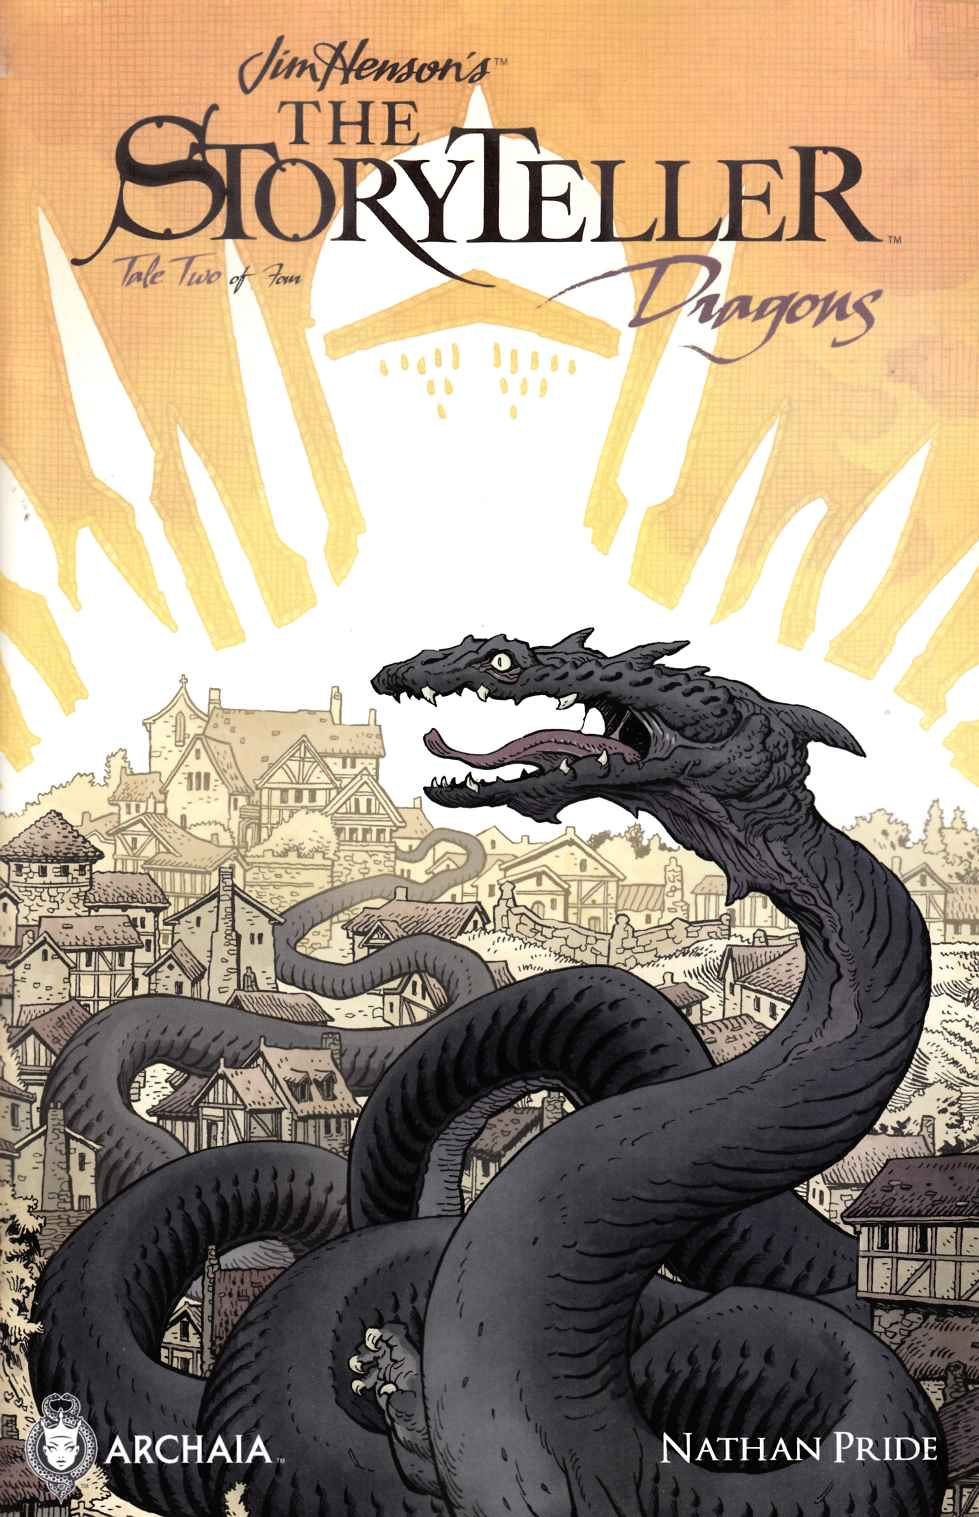 Jim Hensons Storyteller Dragons #2 [Boom Comic] THUMBNAIL